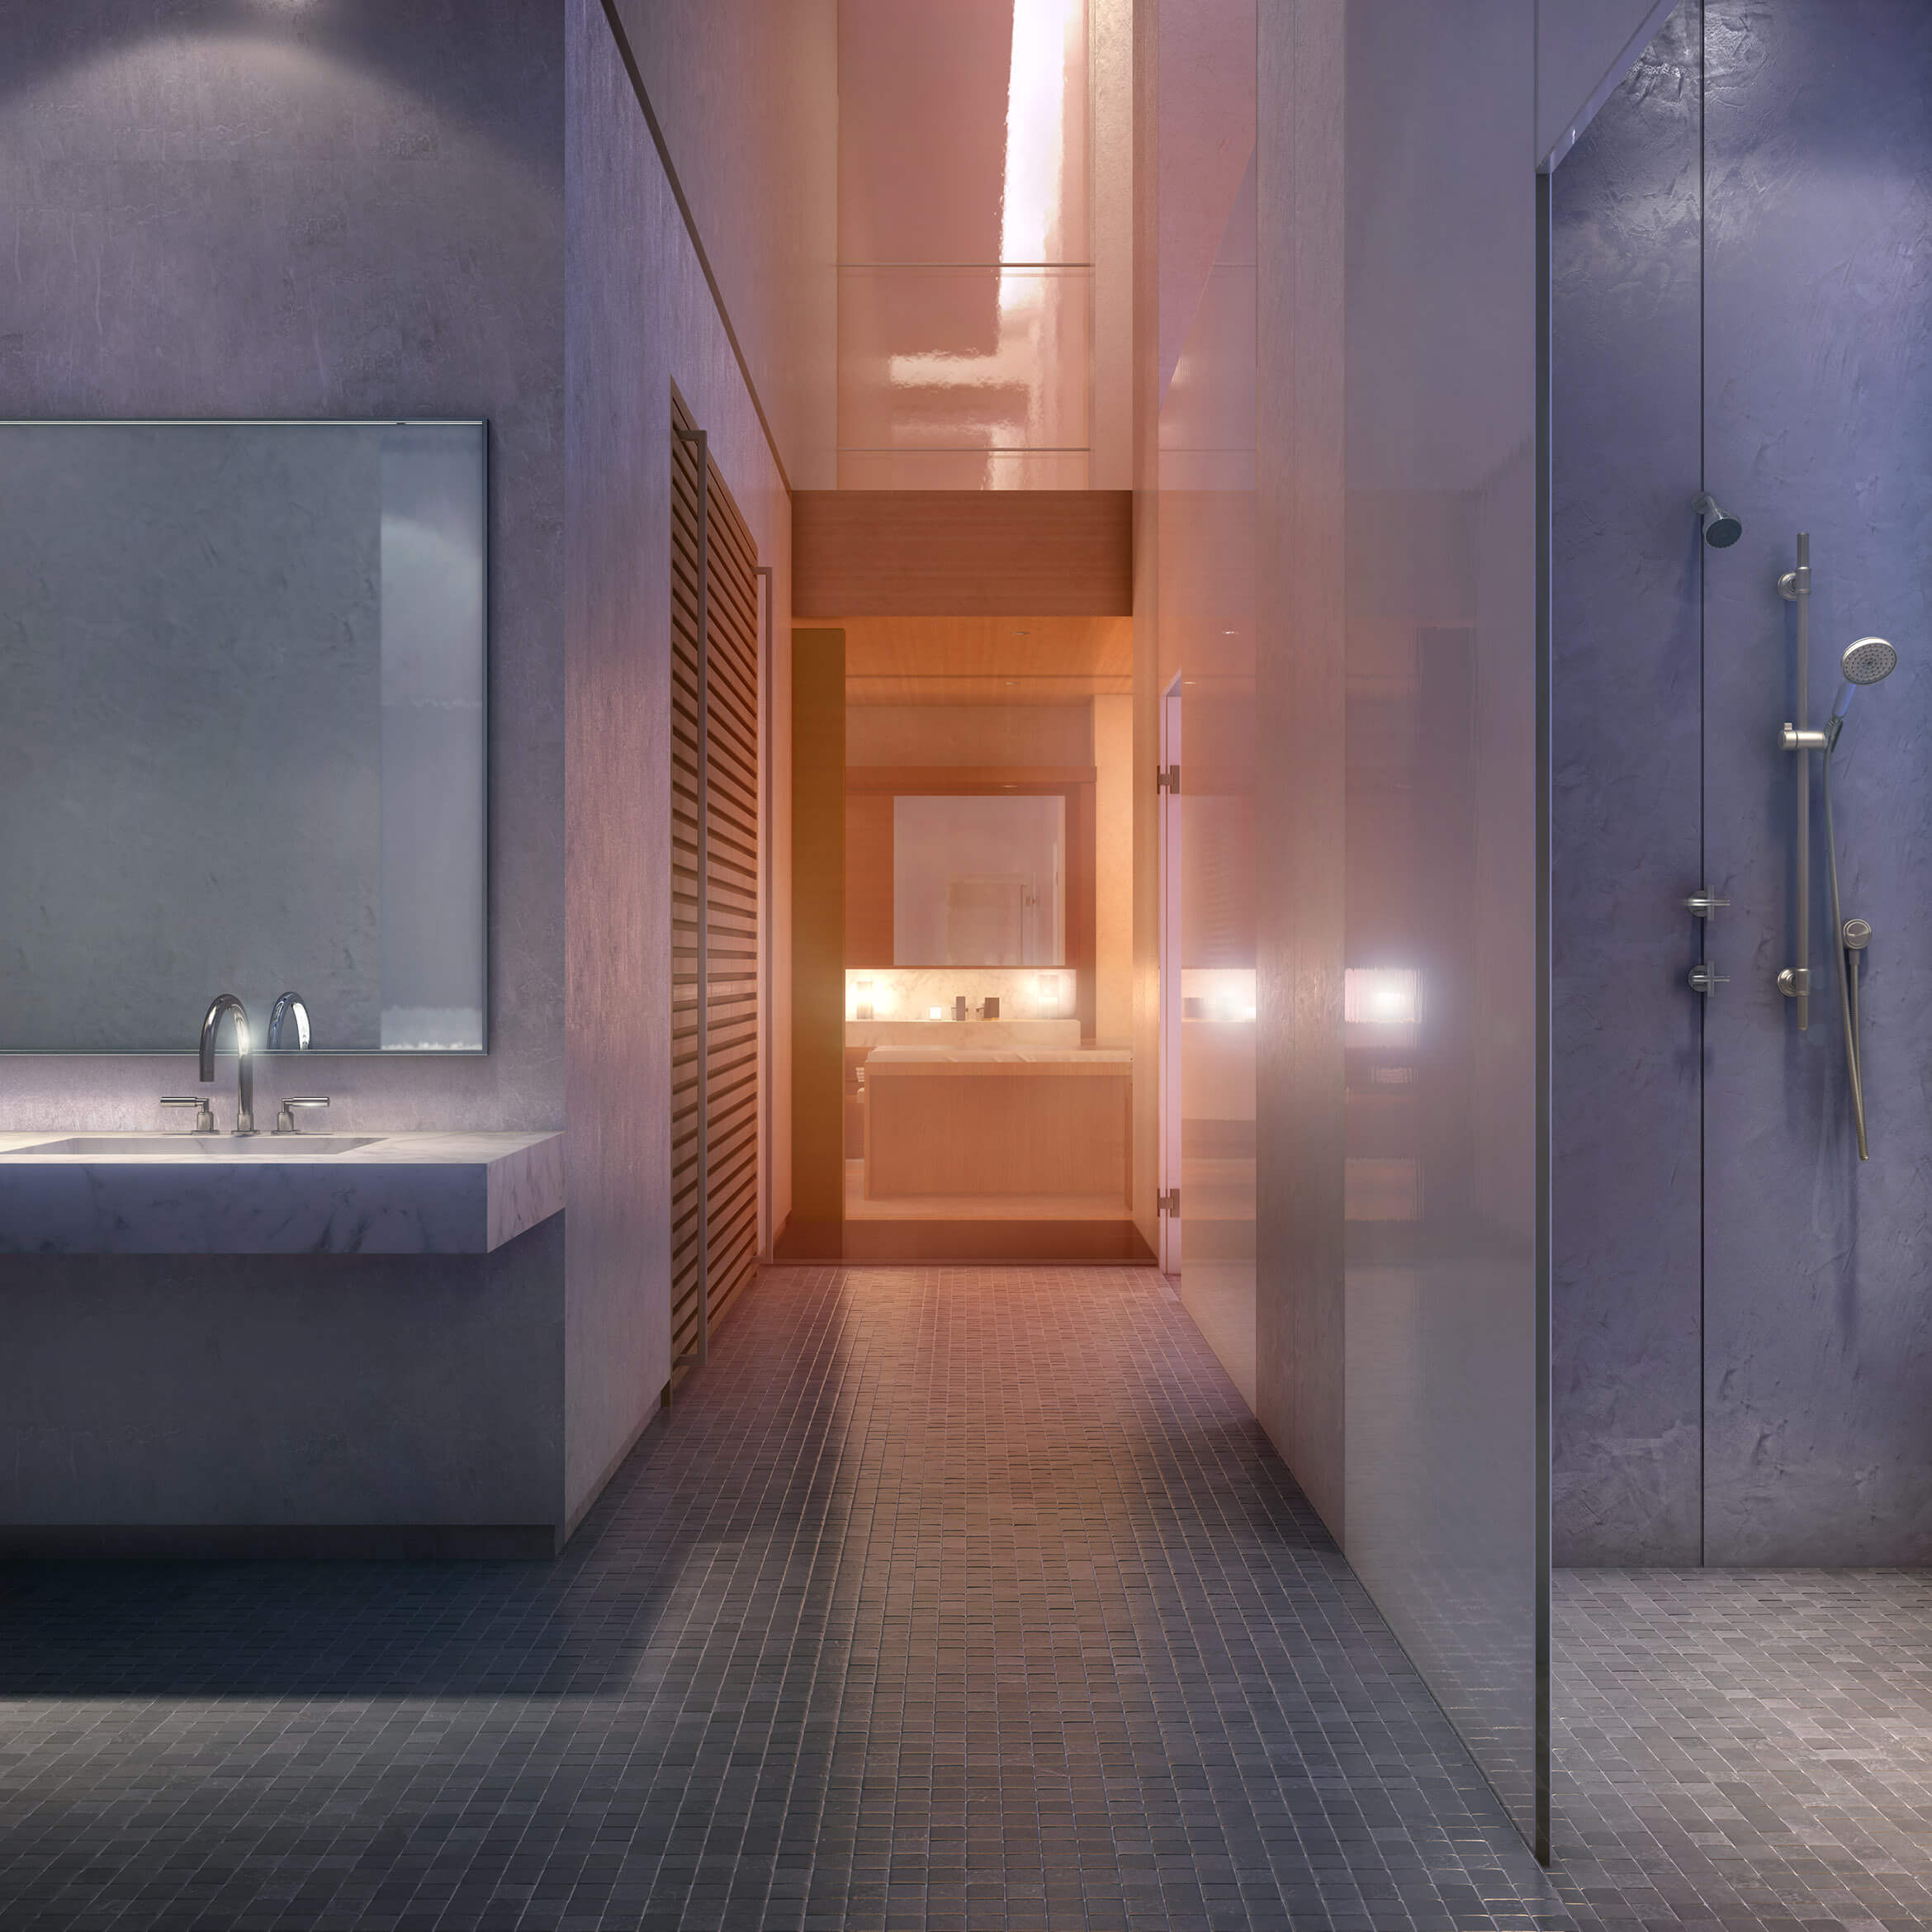 DBOX_website_432casestudy_CGI_amenities_spa